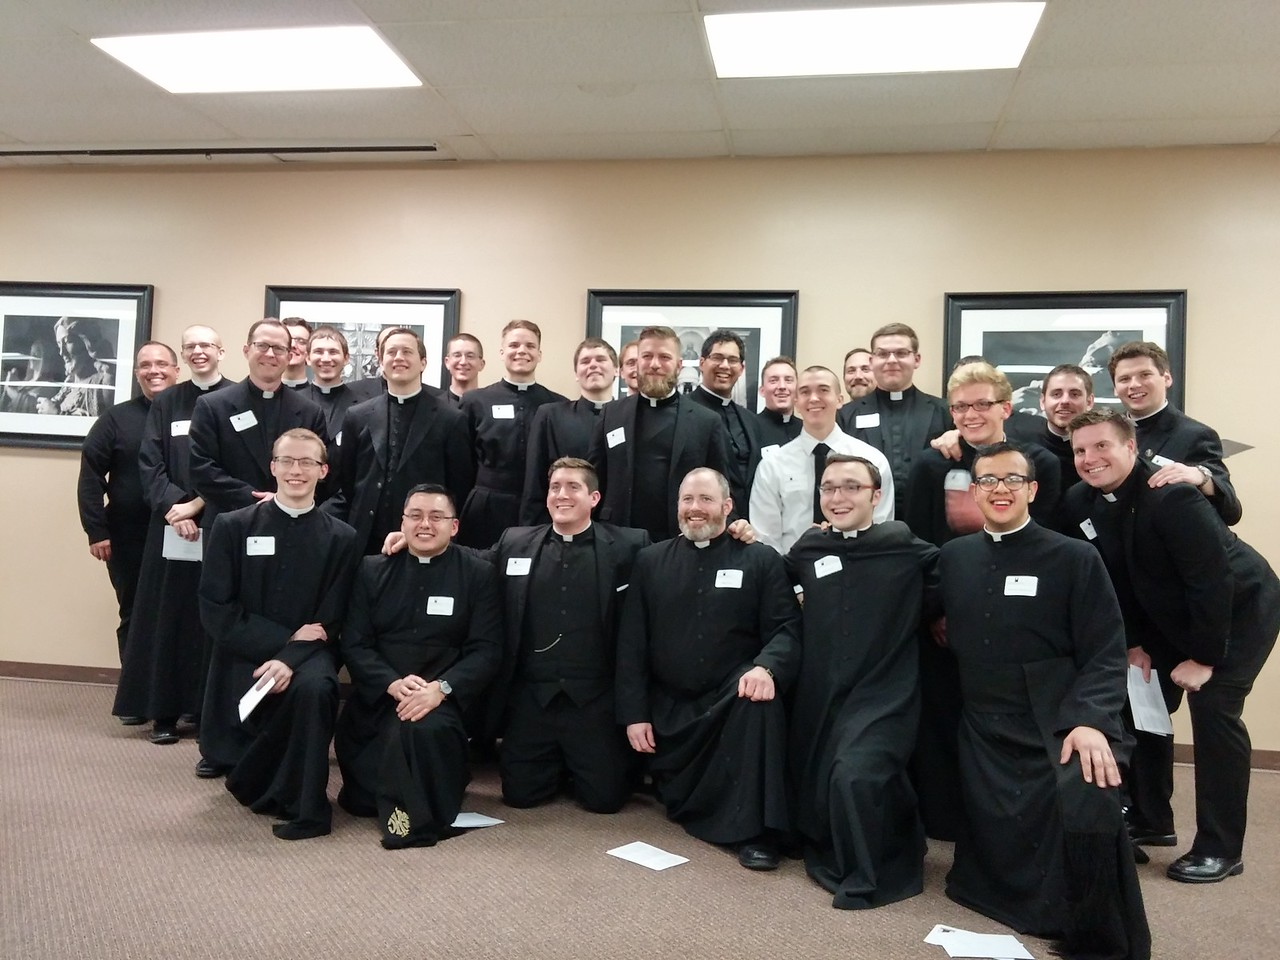 Here is a group shot of the seminarians at the annual Seminarian Christmas Party with Archbishop, Priests, and guests. This gathering is sponsored by the West Serra Club of Omaha.